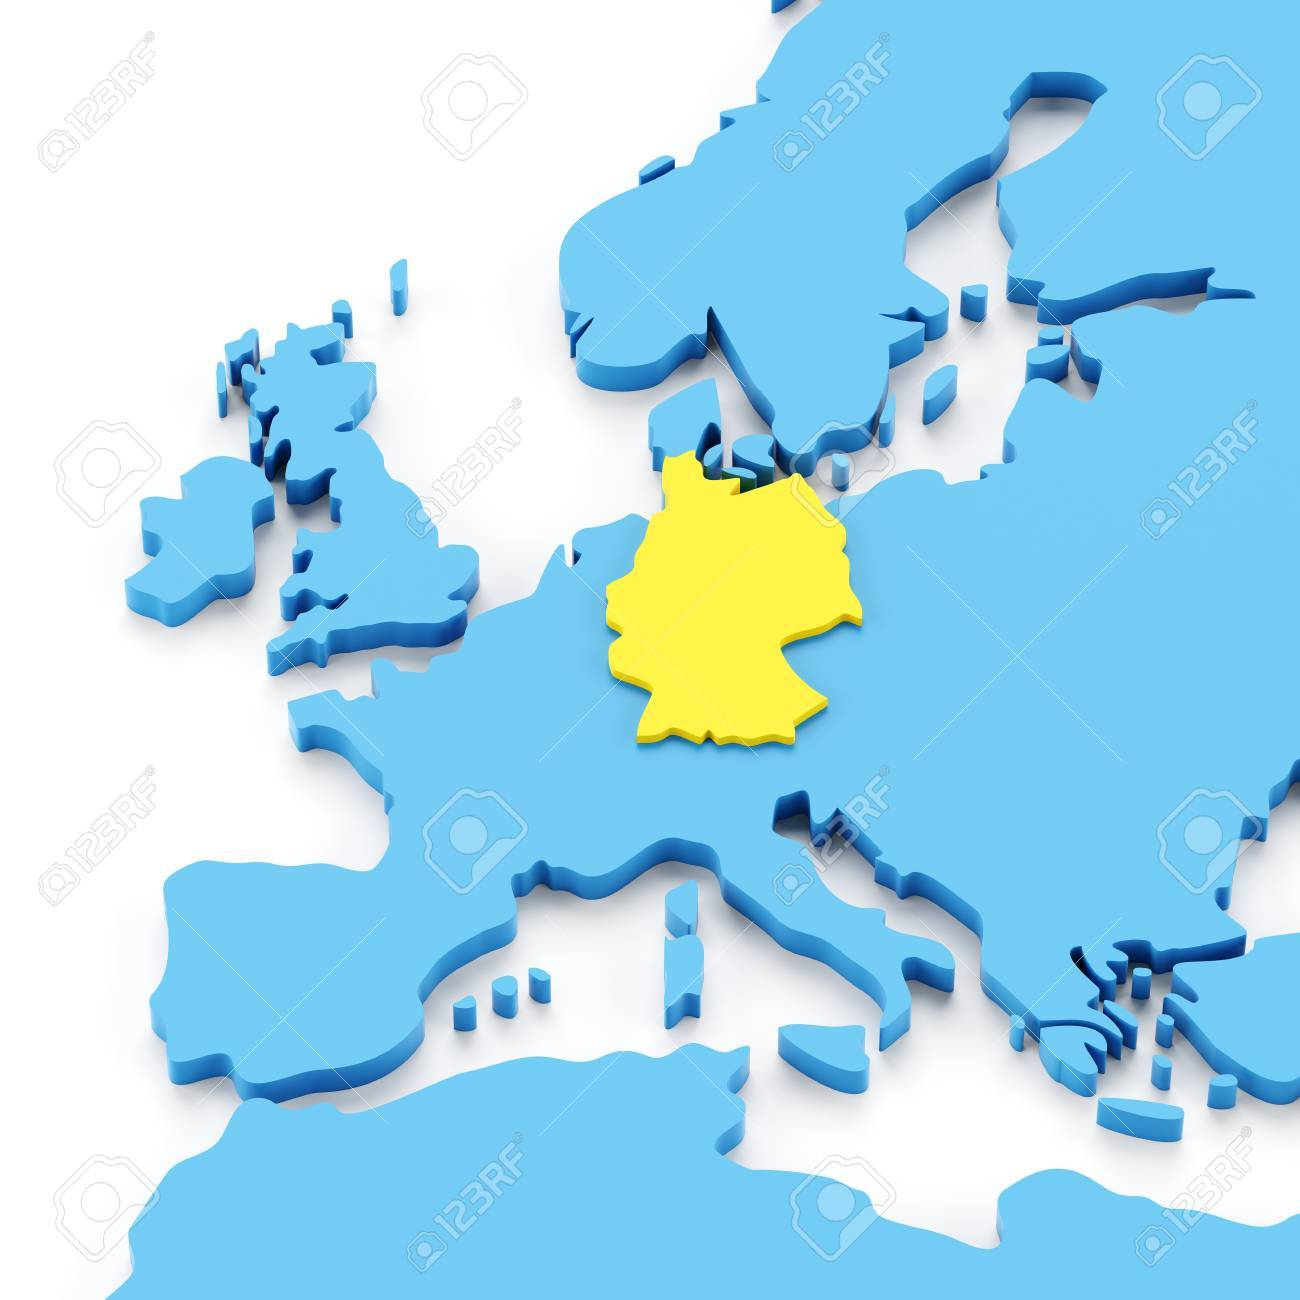 Map of europe with germany highlighted in yellow 3d render stock map of europe with germany highlighted in yellow 3d render stock photo 52038991 gumiabroncs Image collections